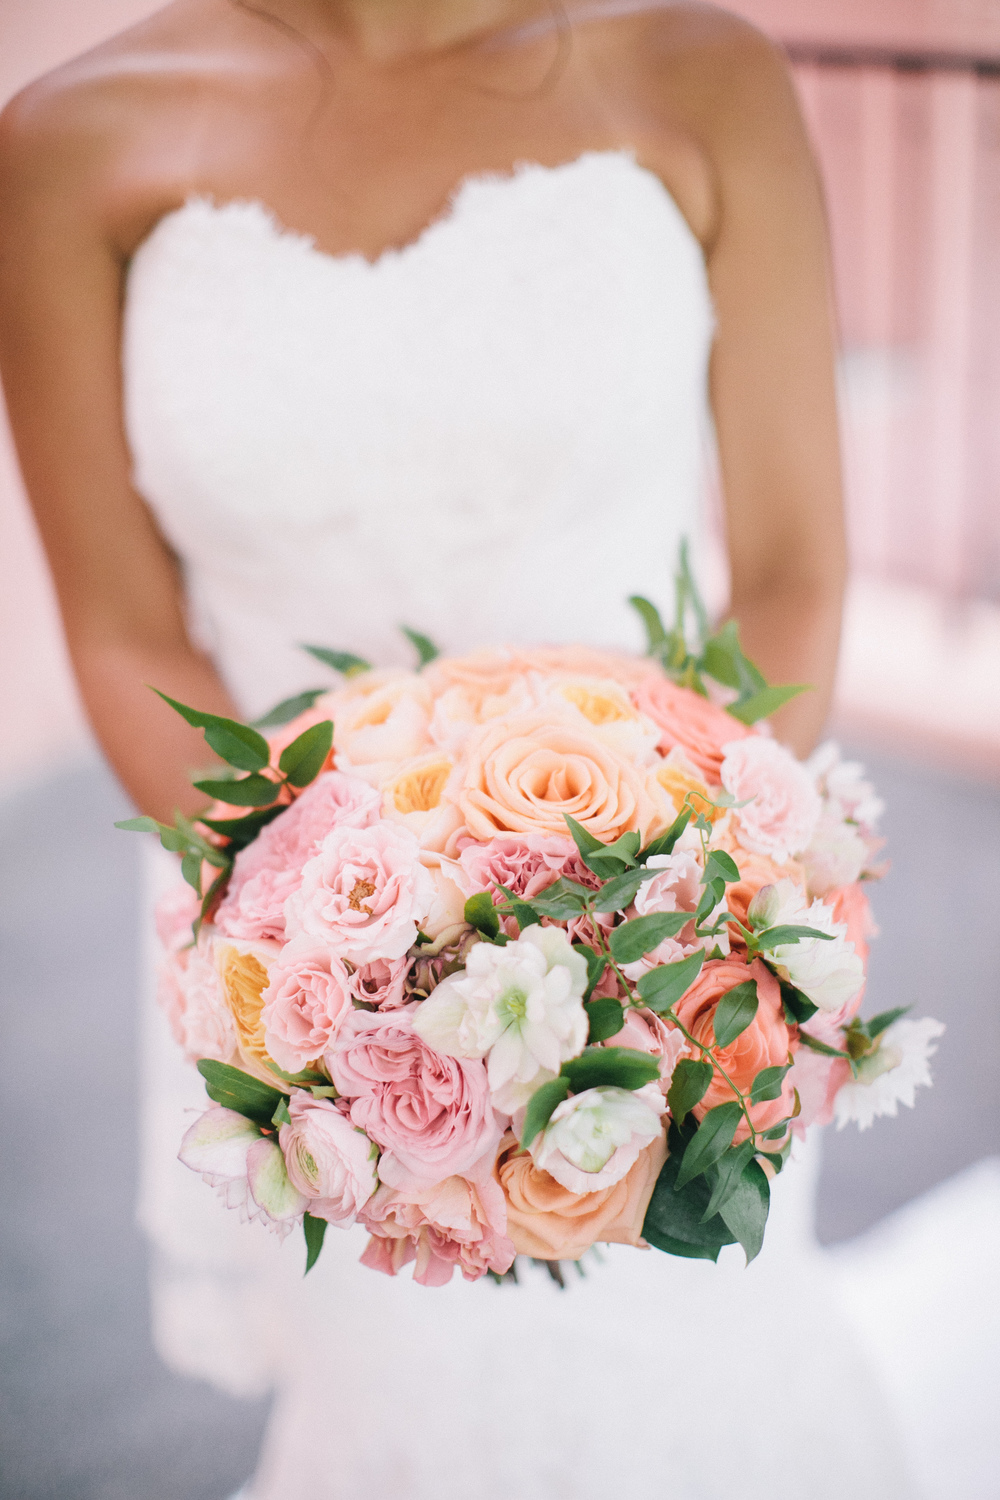 Floral & Design: Passion Roots | Photography: Pinky Photography